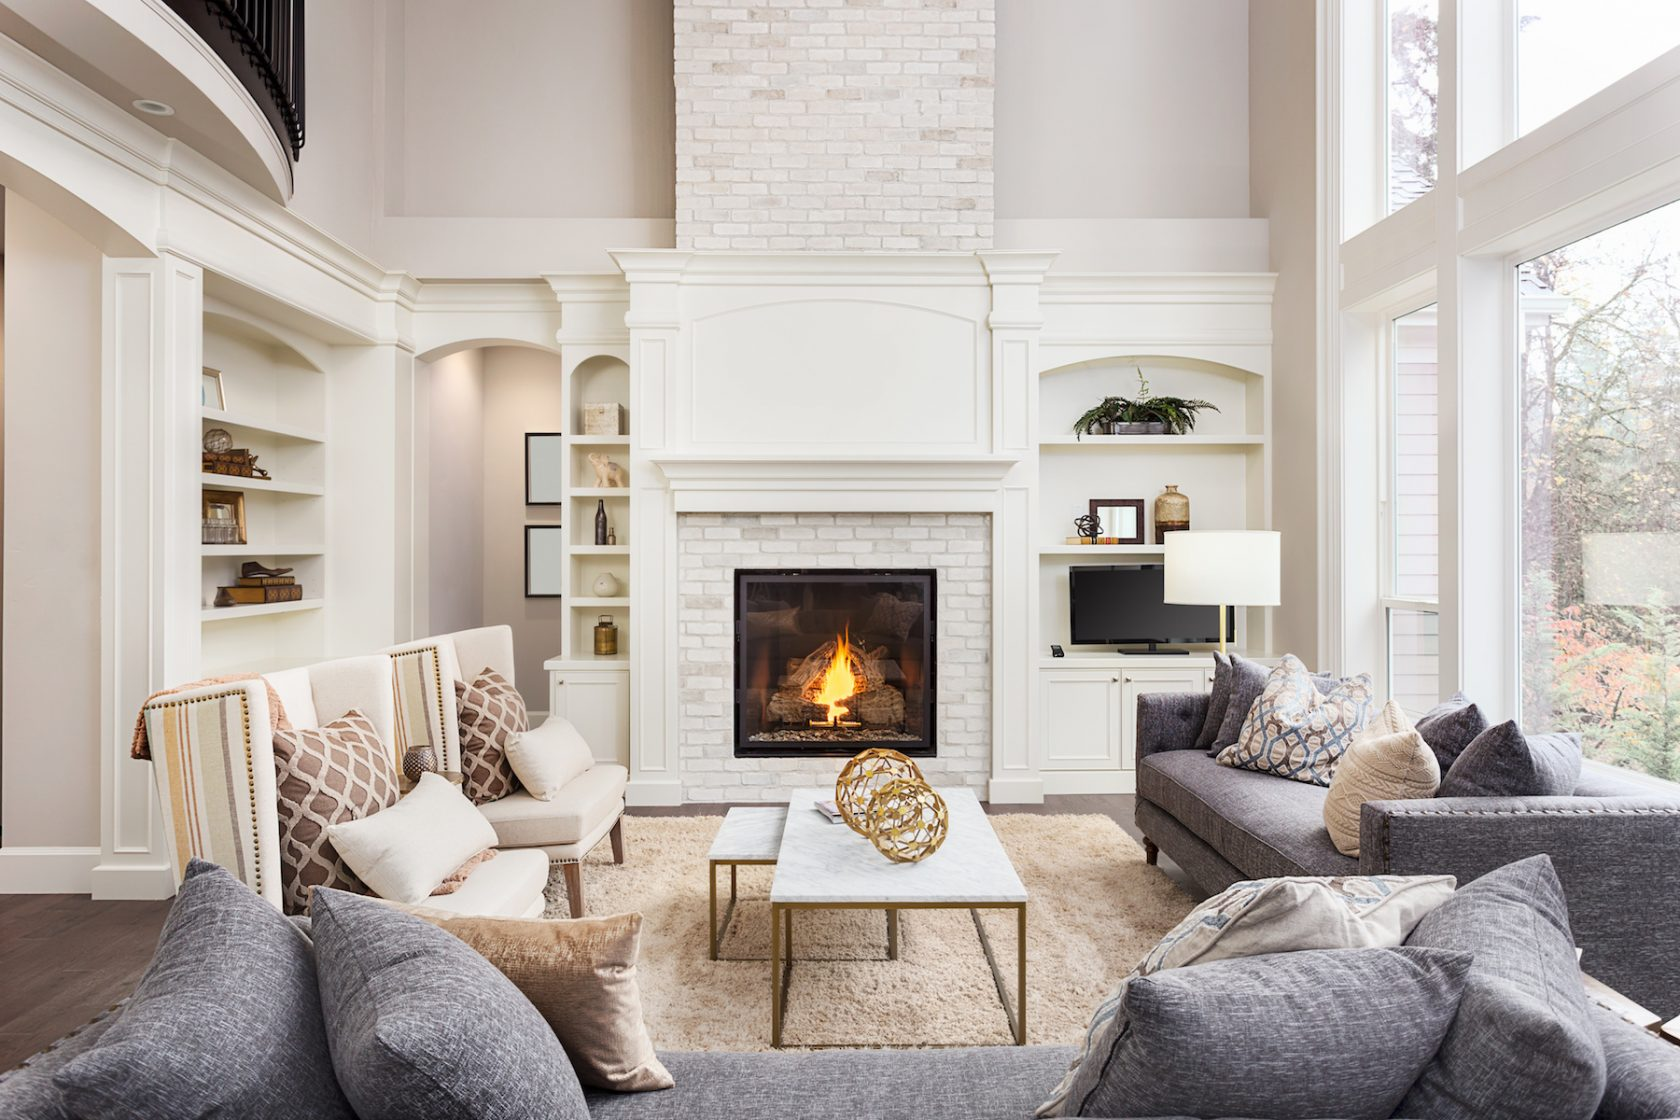 sell-your-burlington-real-estate-with-design-home-staging-team-logue